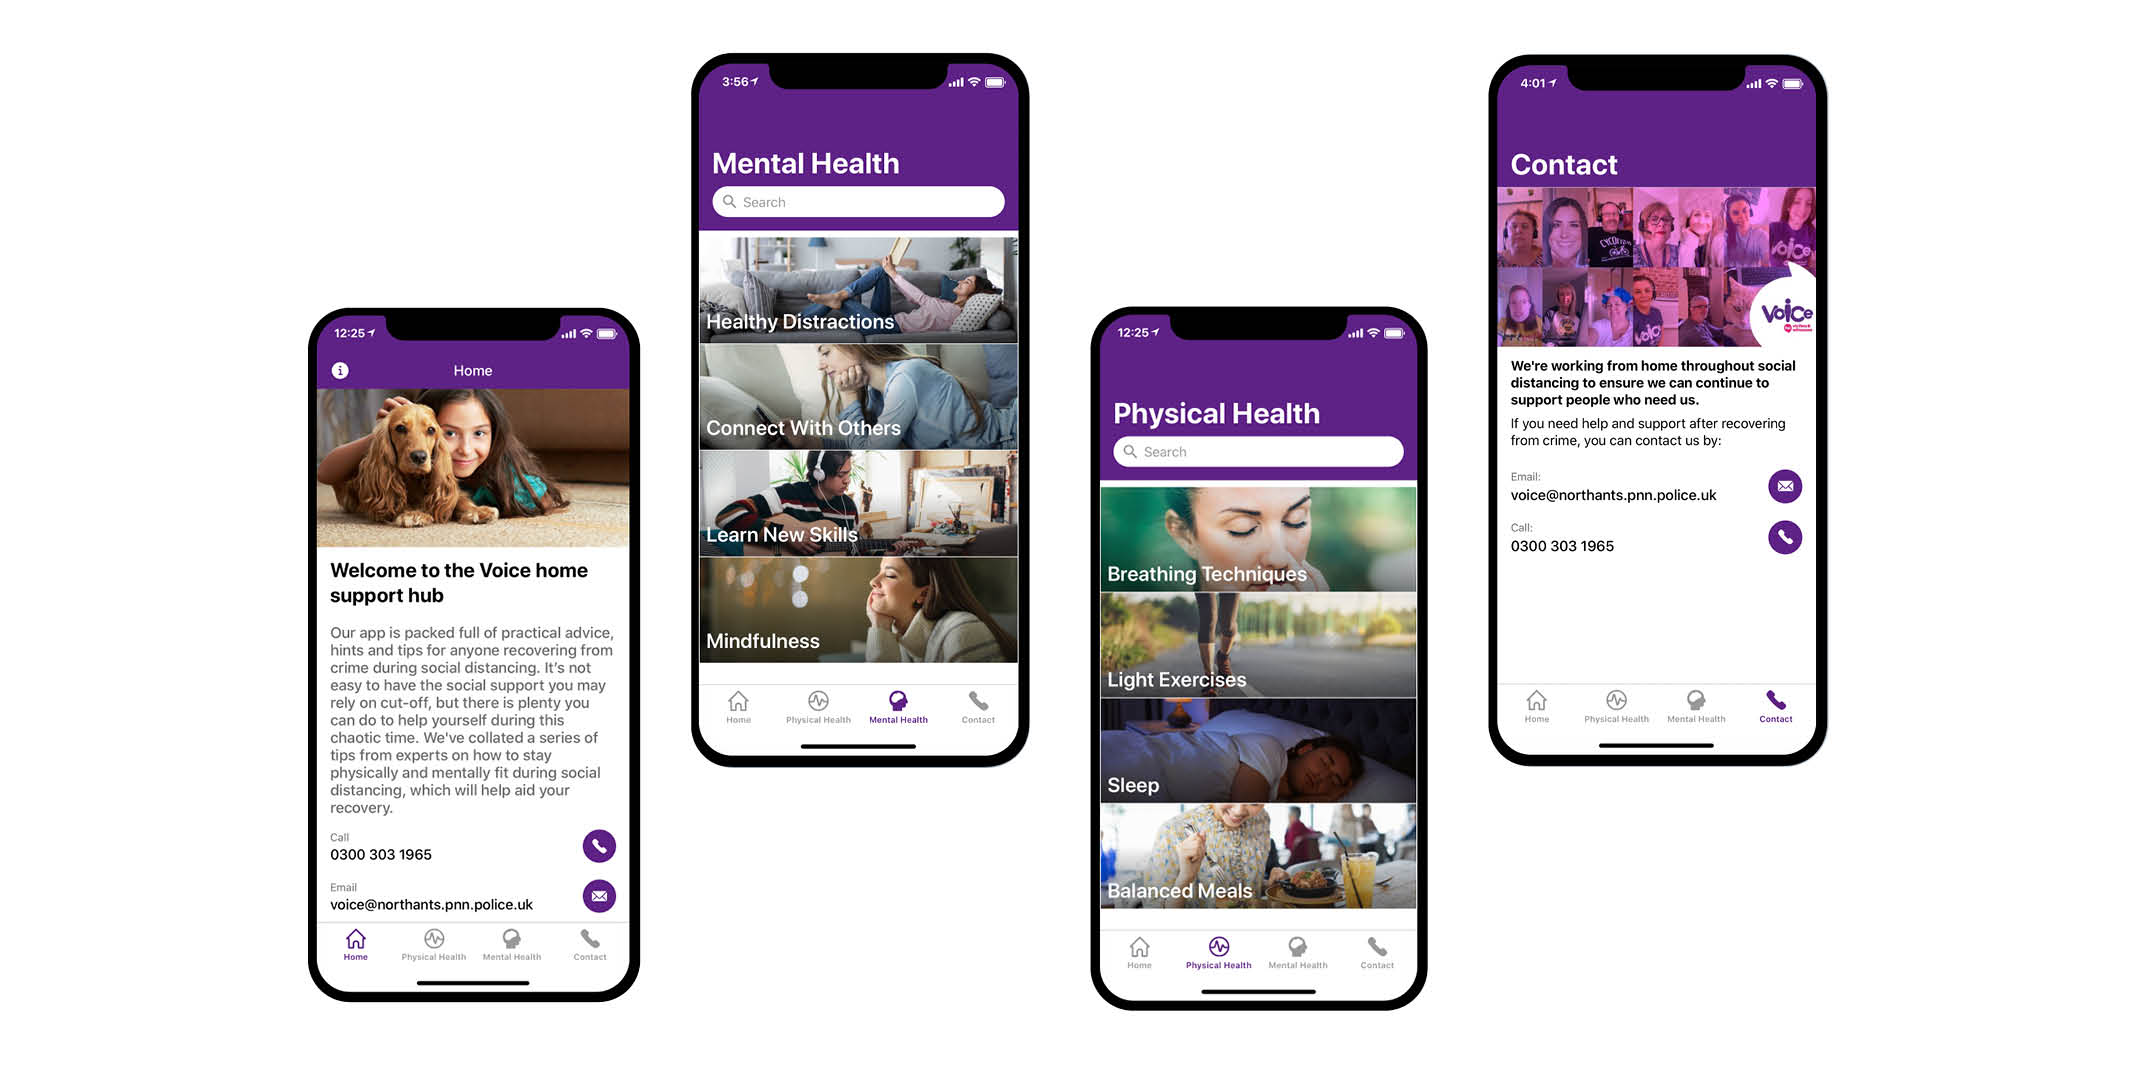 Voice Home Support Hub App